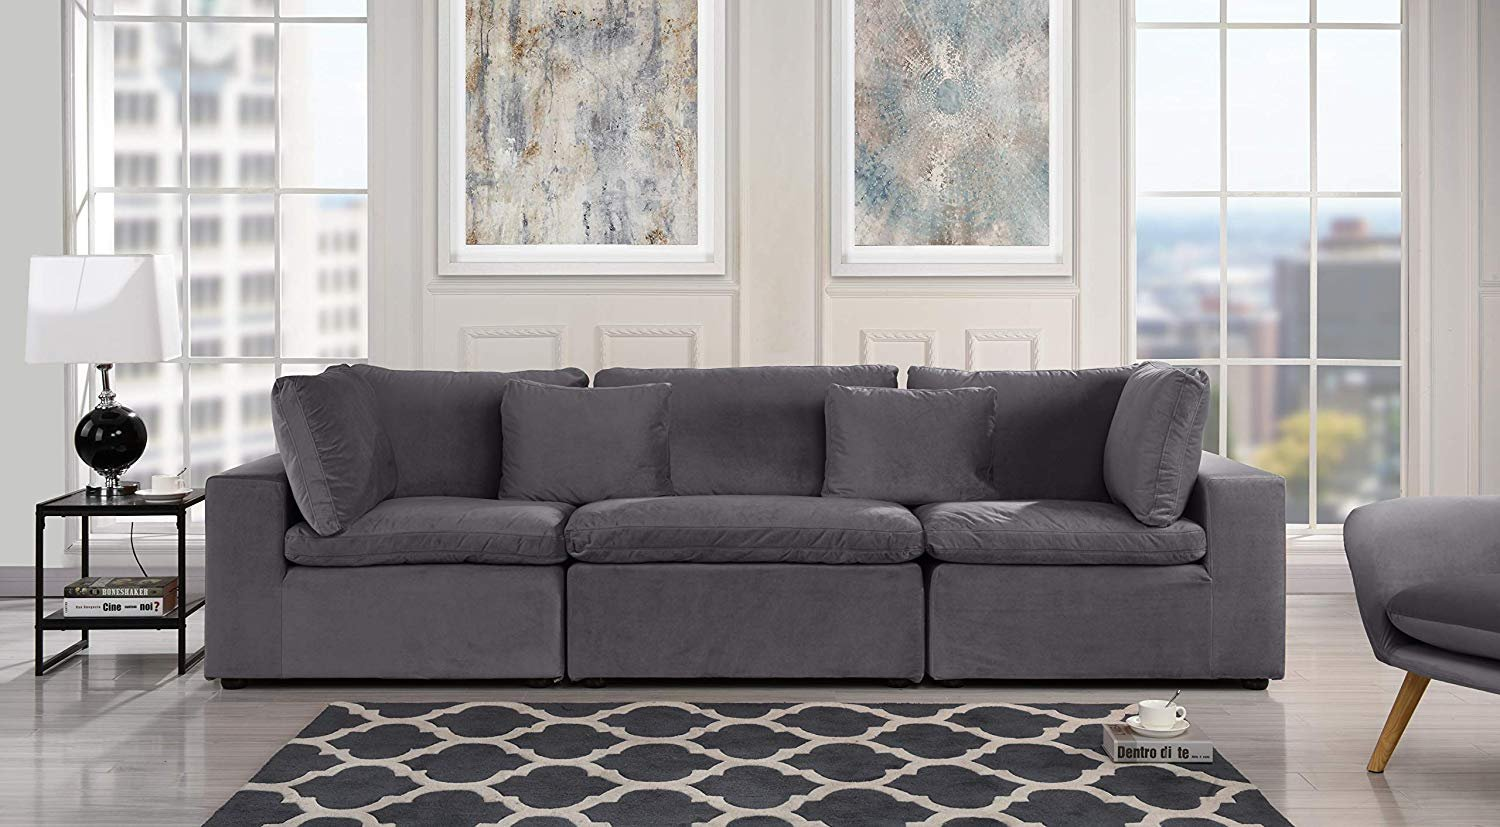 Details about large classic living room sofa plush velvet 3 seater couch grey